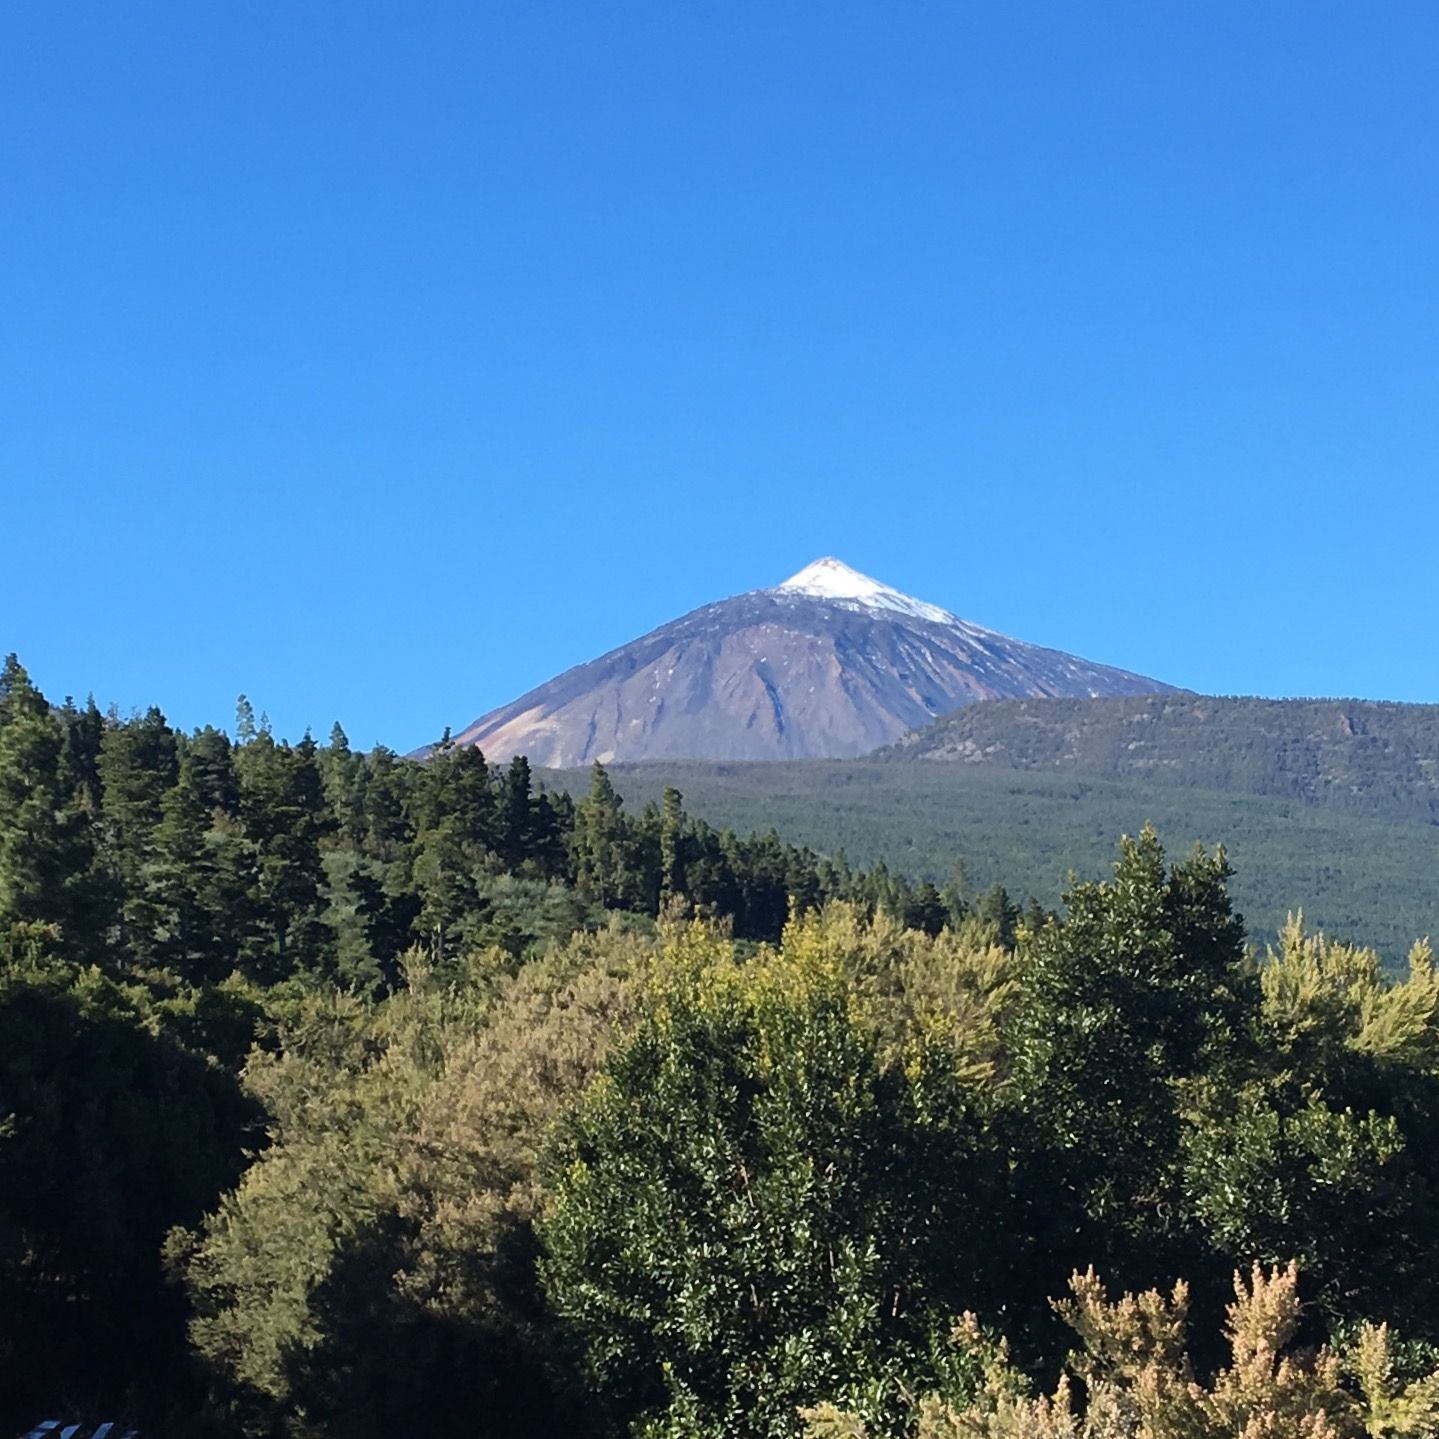 Cycling up towards the peak of mount Teide volcano